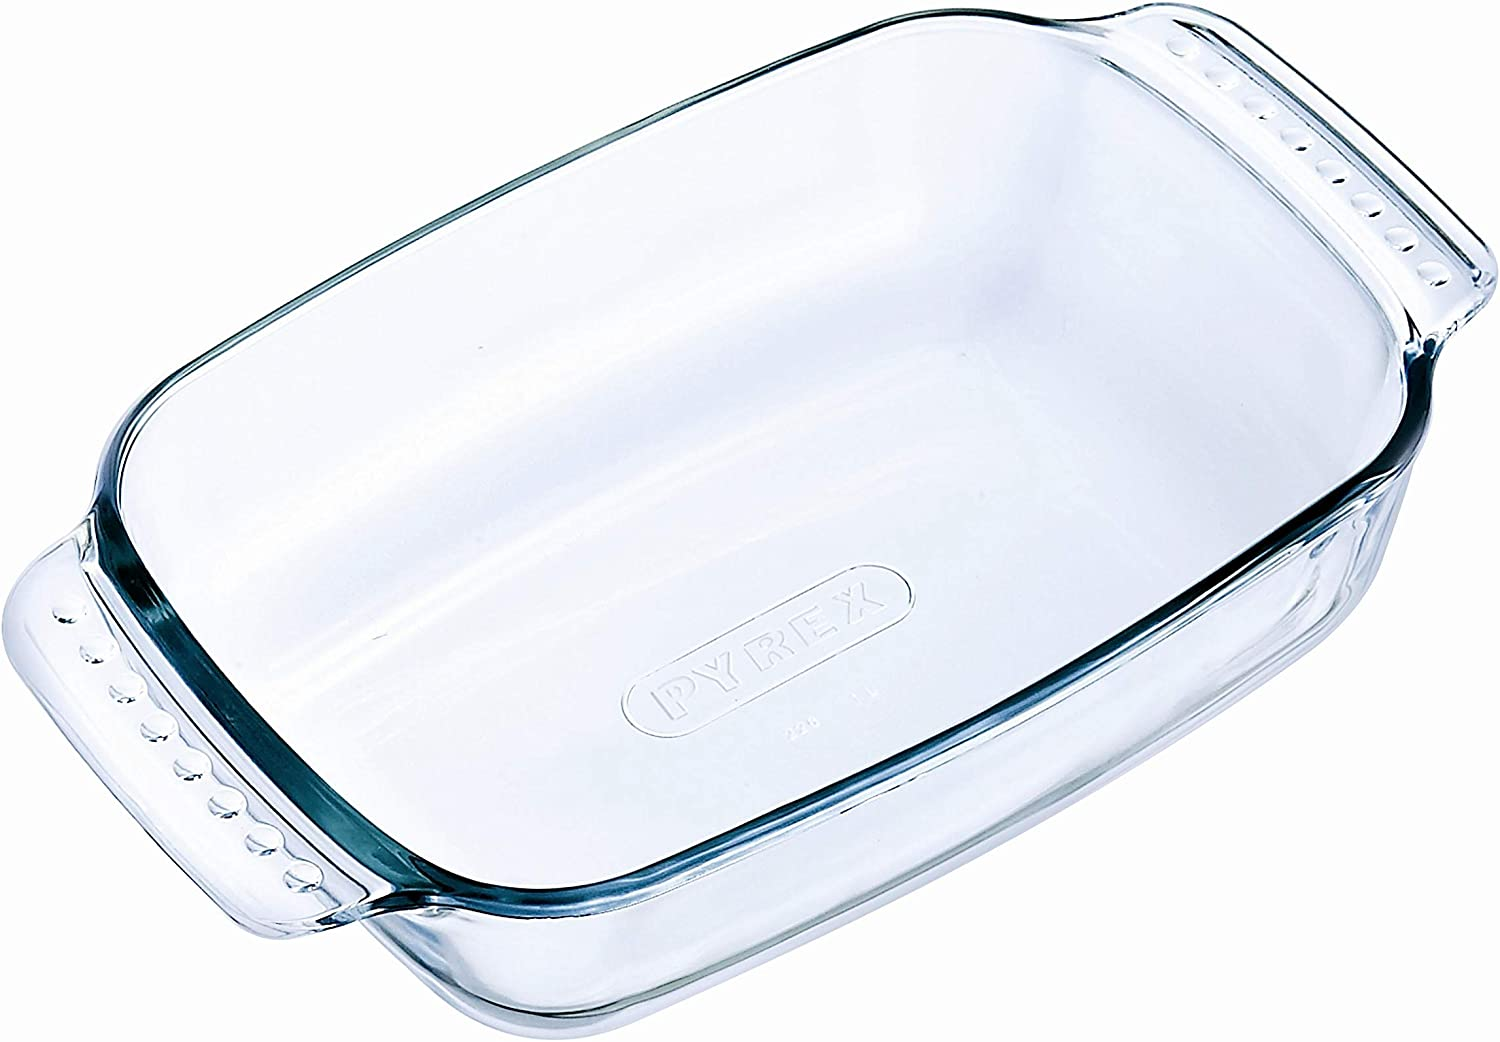 Pyrex Classic Max 64% OFF Rectangular Pan Clear Limited price sale 0.75 Glass Litre